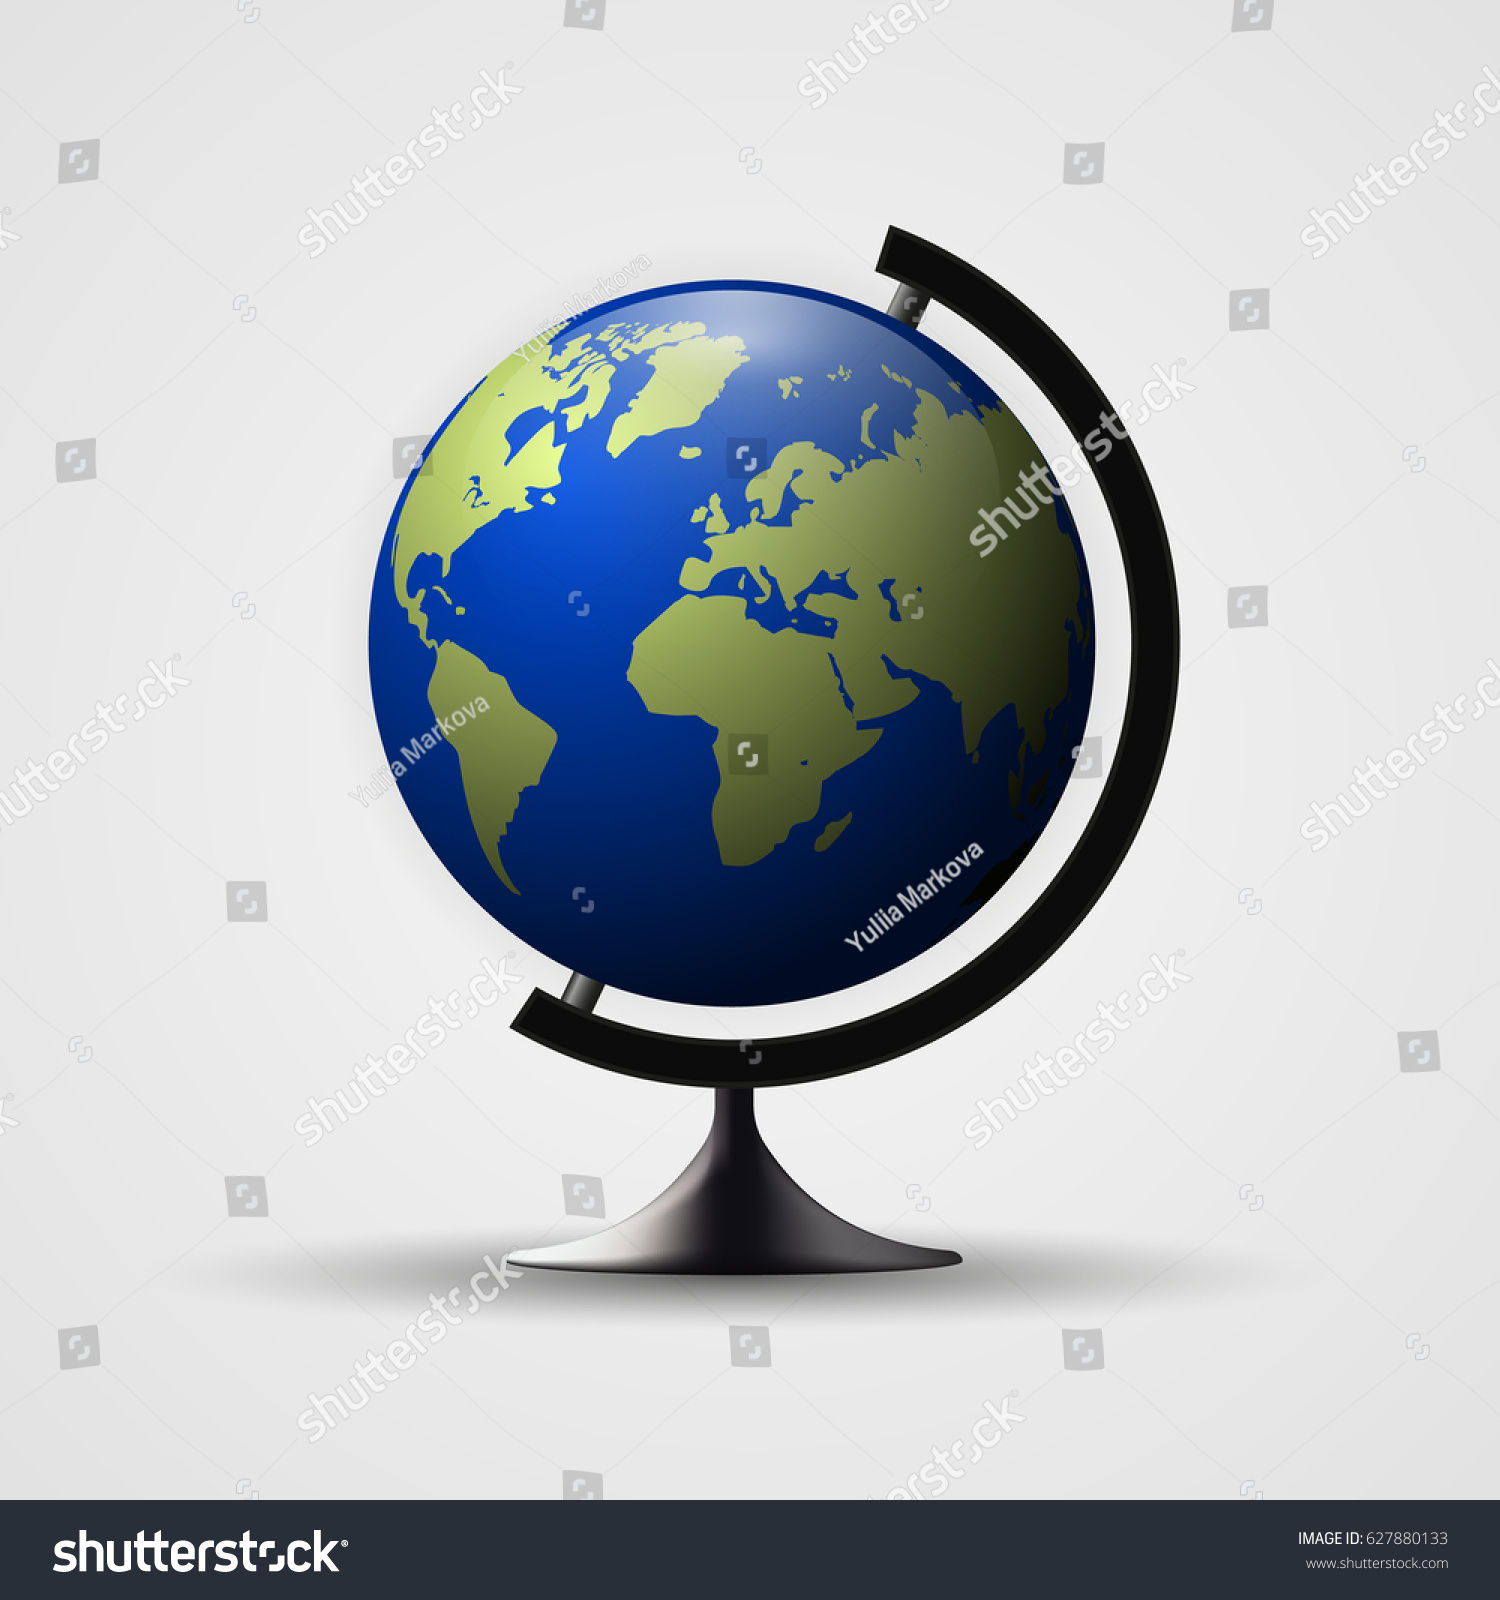 Earth globe illustration 3 d planet icon stock illustration earth globe illustration 3d planet icon world map gumiabroncs Choice Image